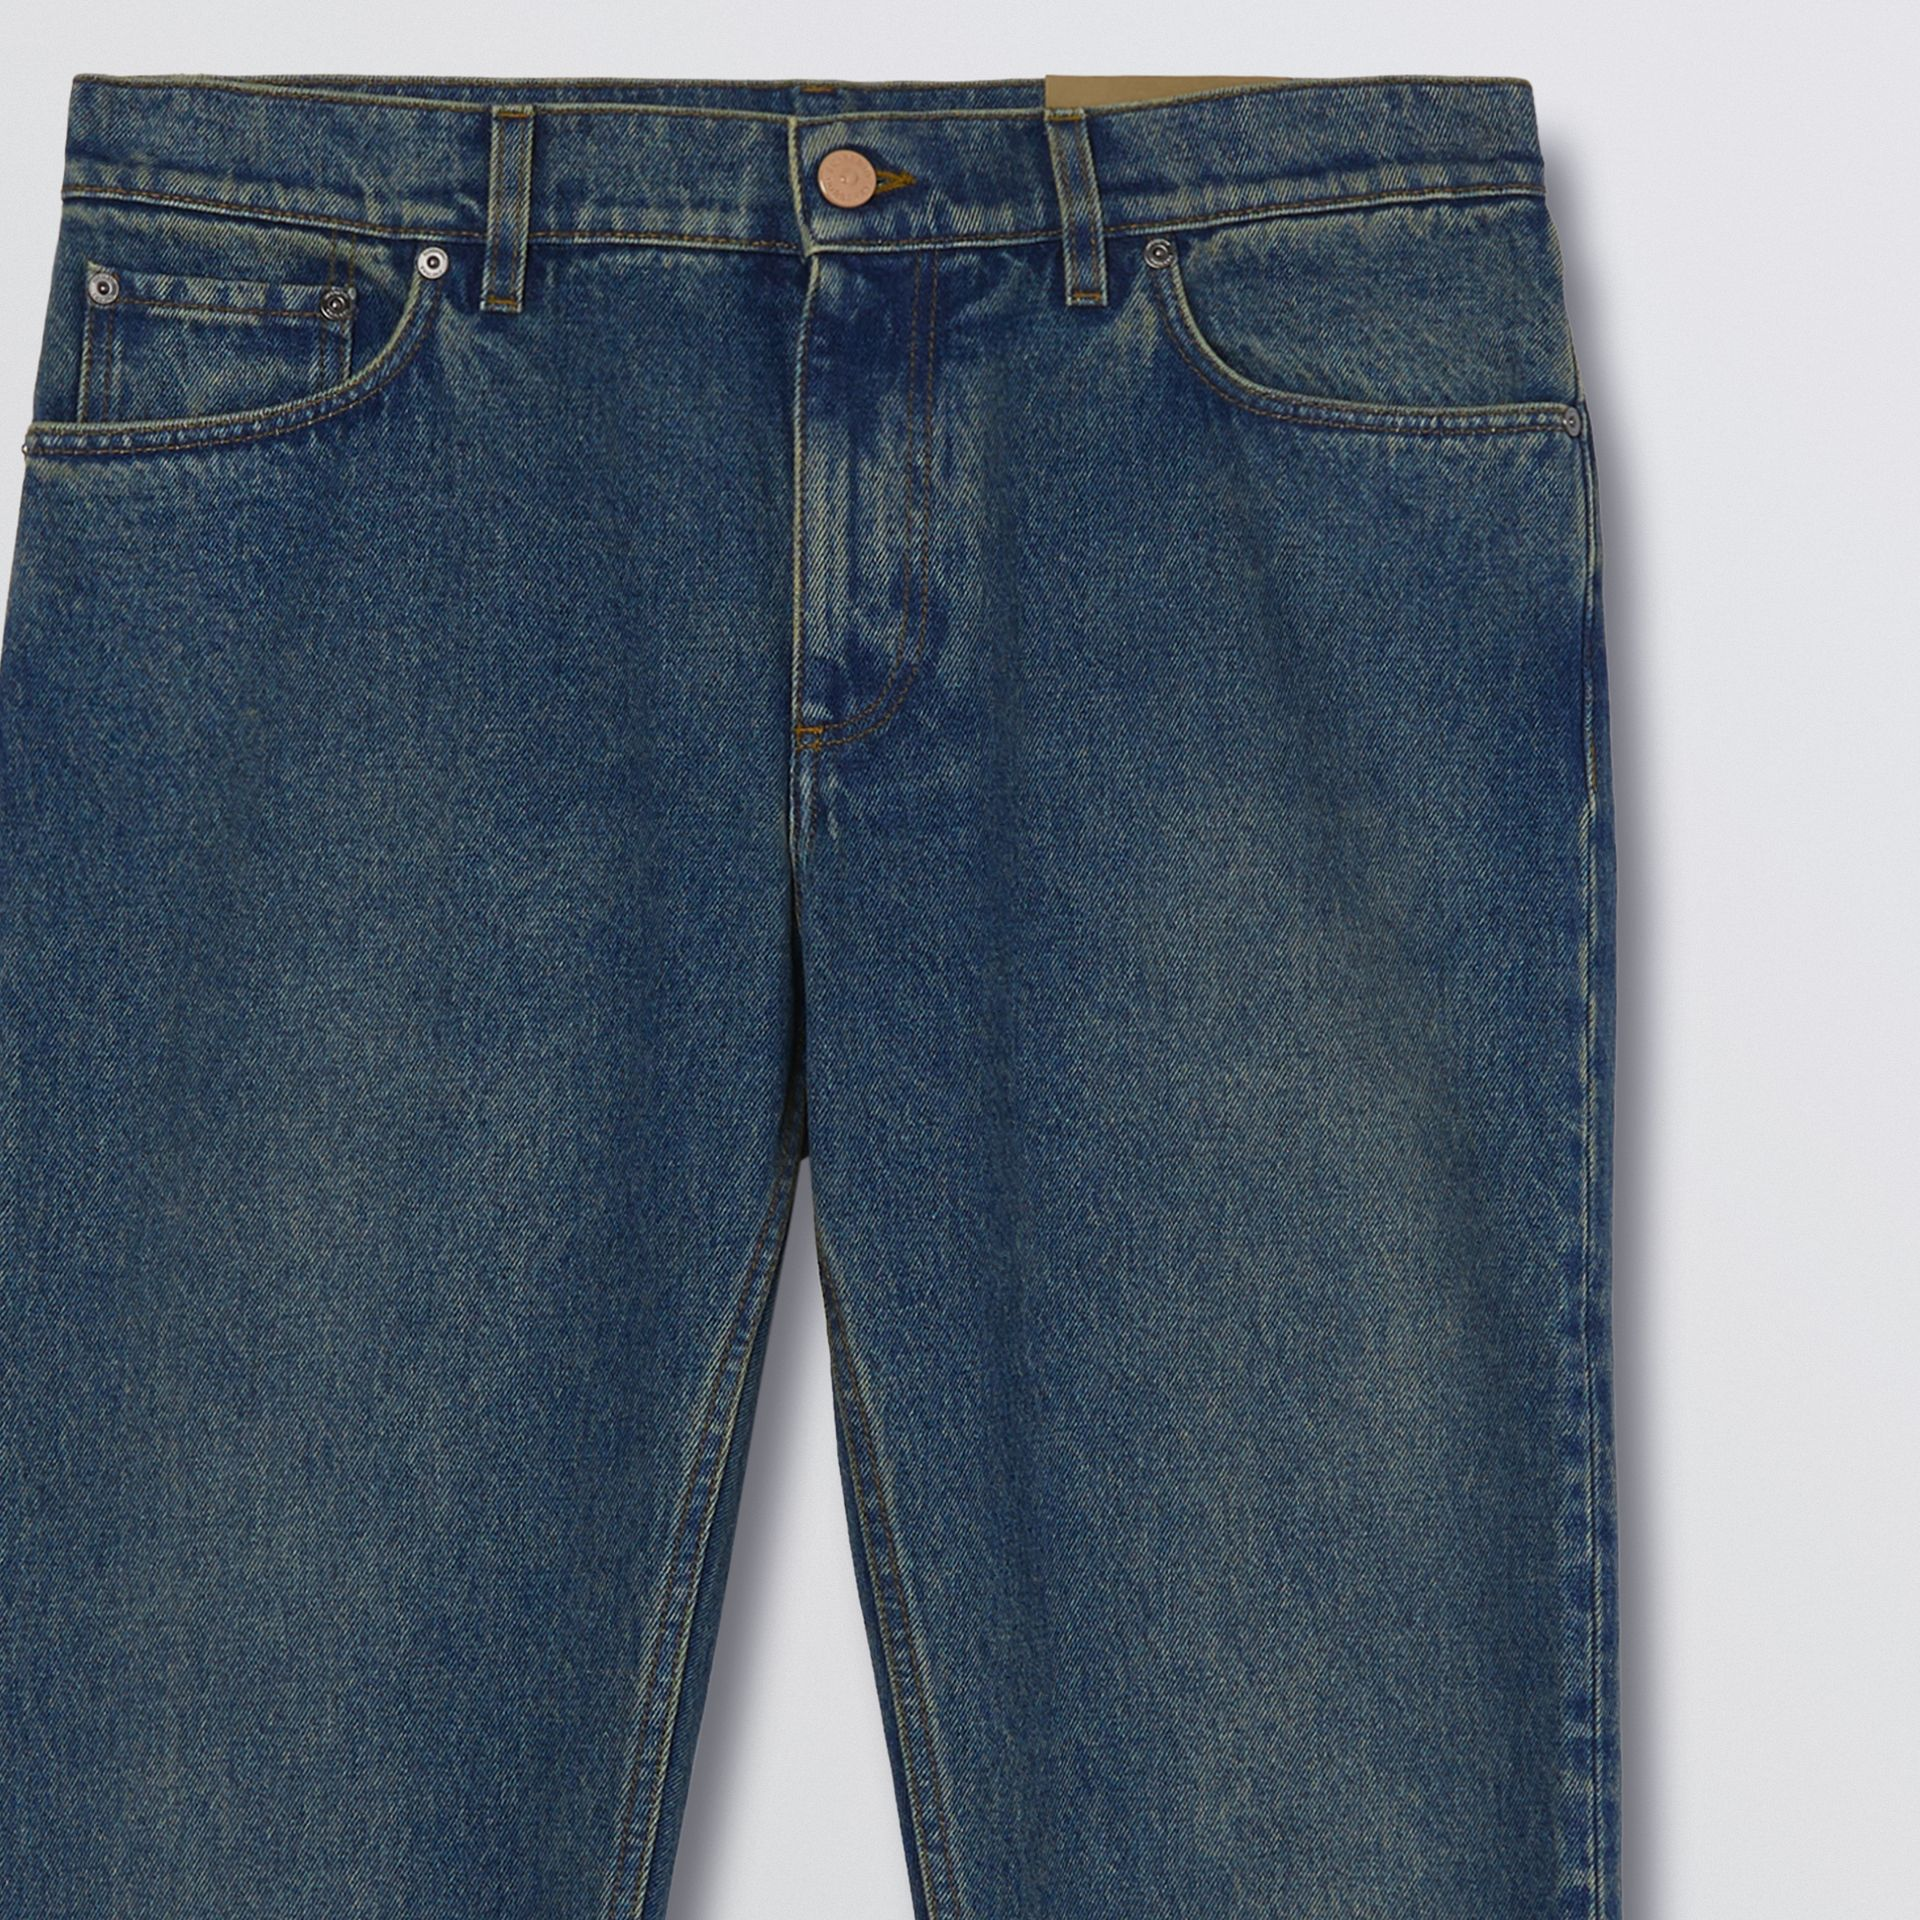 Straight Fit Washed Jeans in Indigo - Men | Burberry - gallery image 5